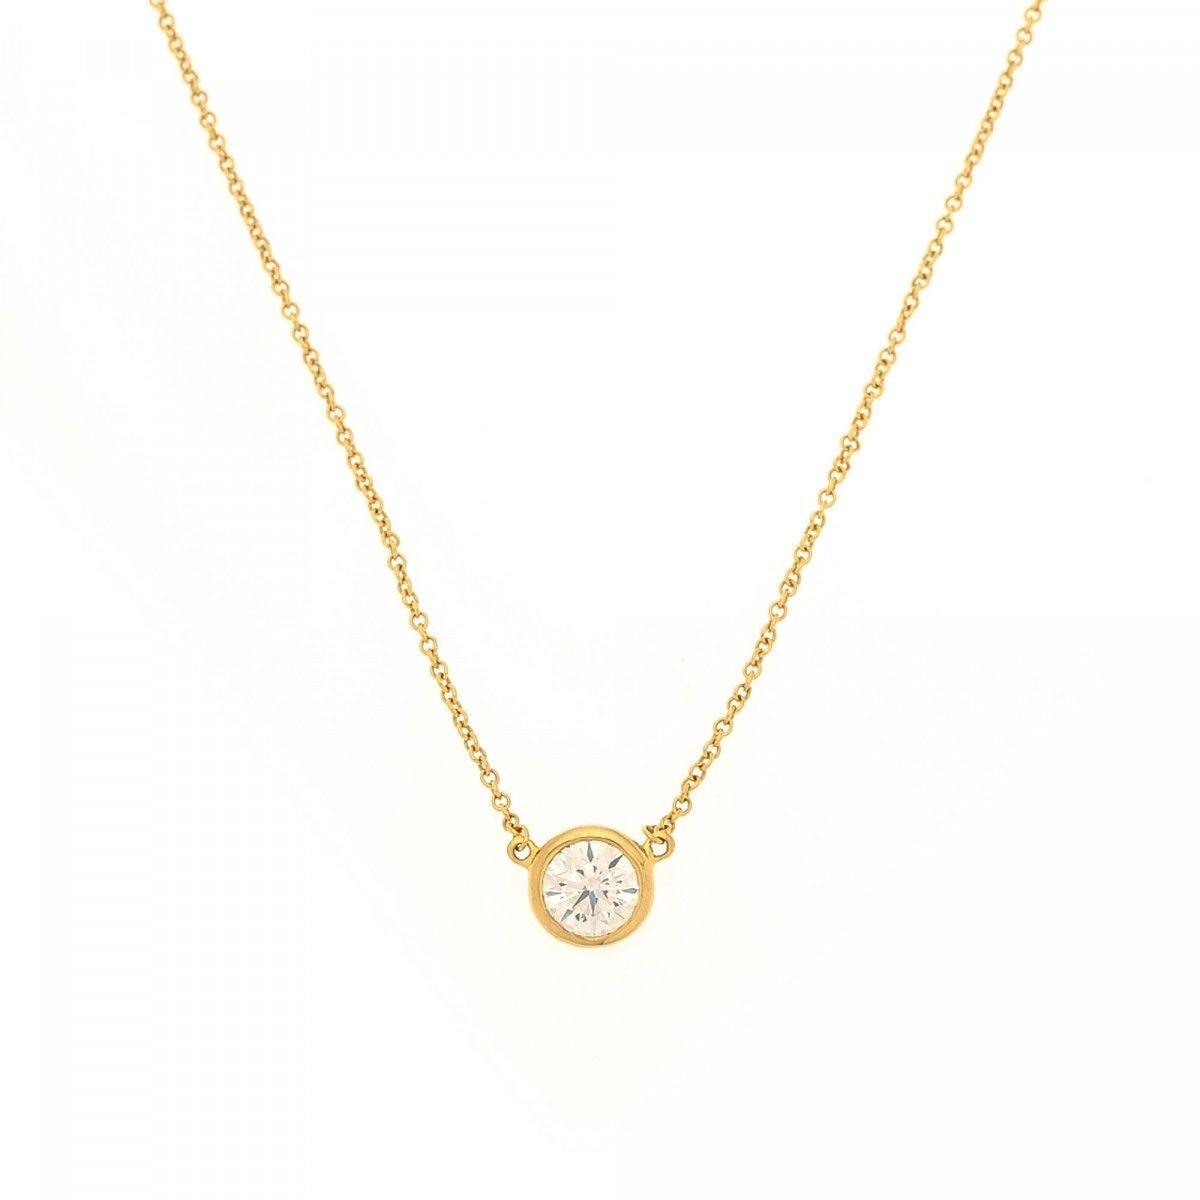 tiffany diamonds by the yard pendant necklace 18k gold